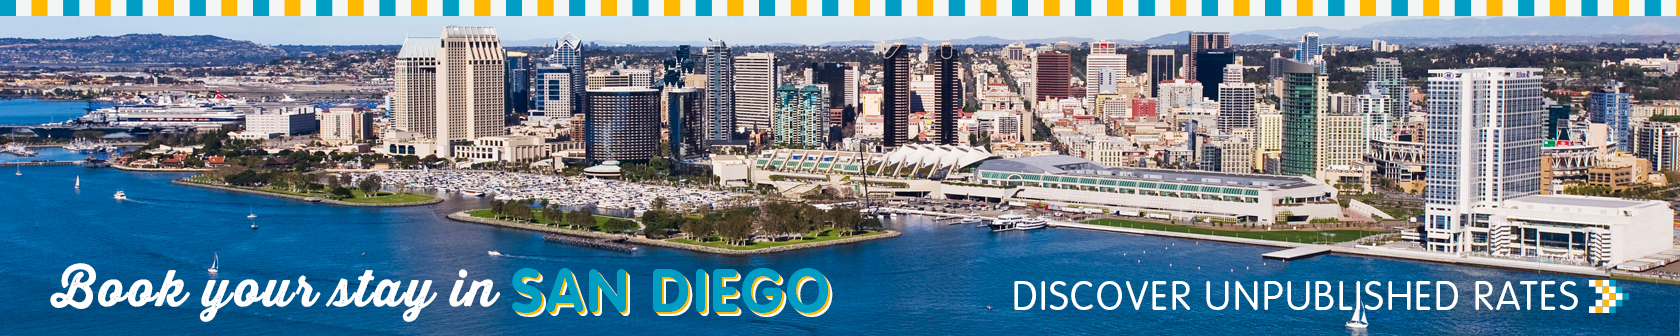 Book Your Stay in San Diego - Discover Unpublished Rates